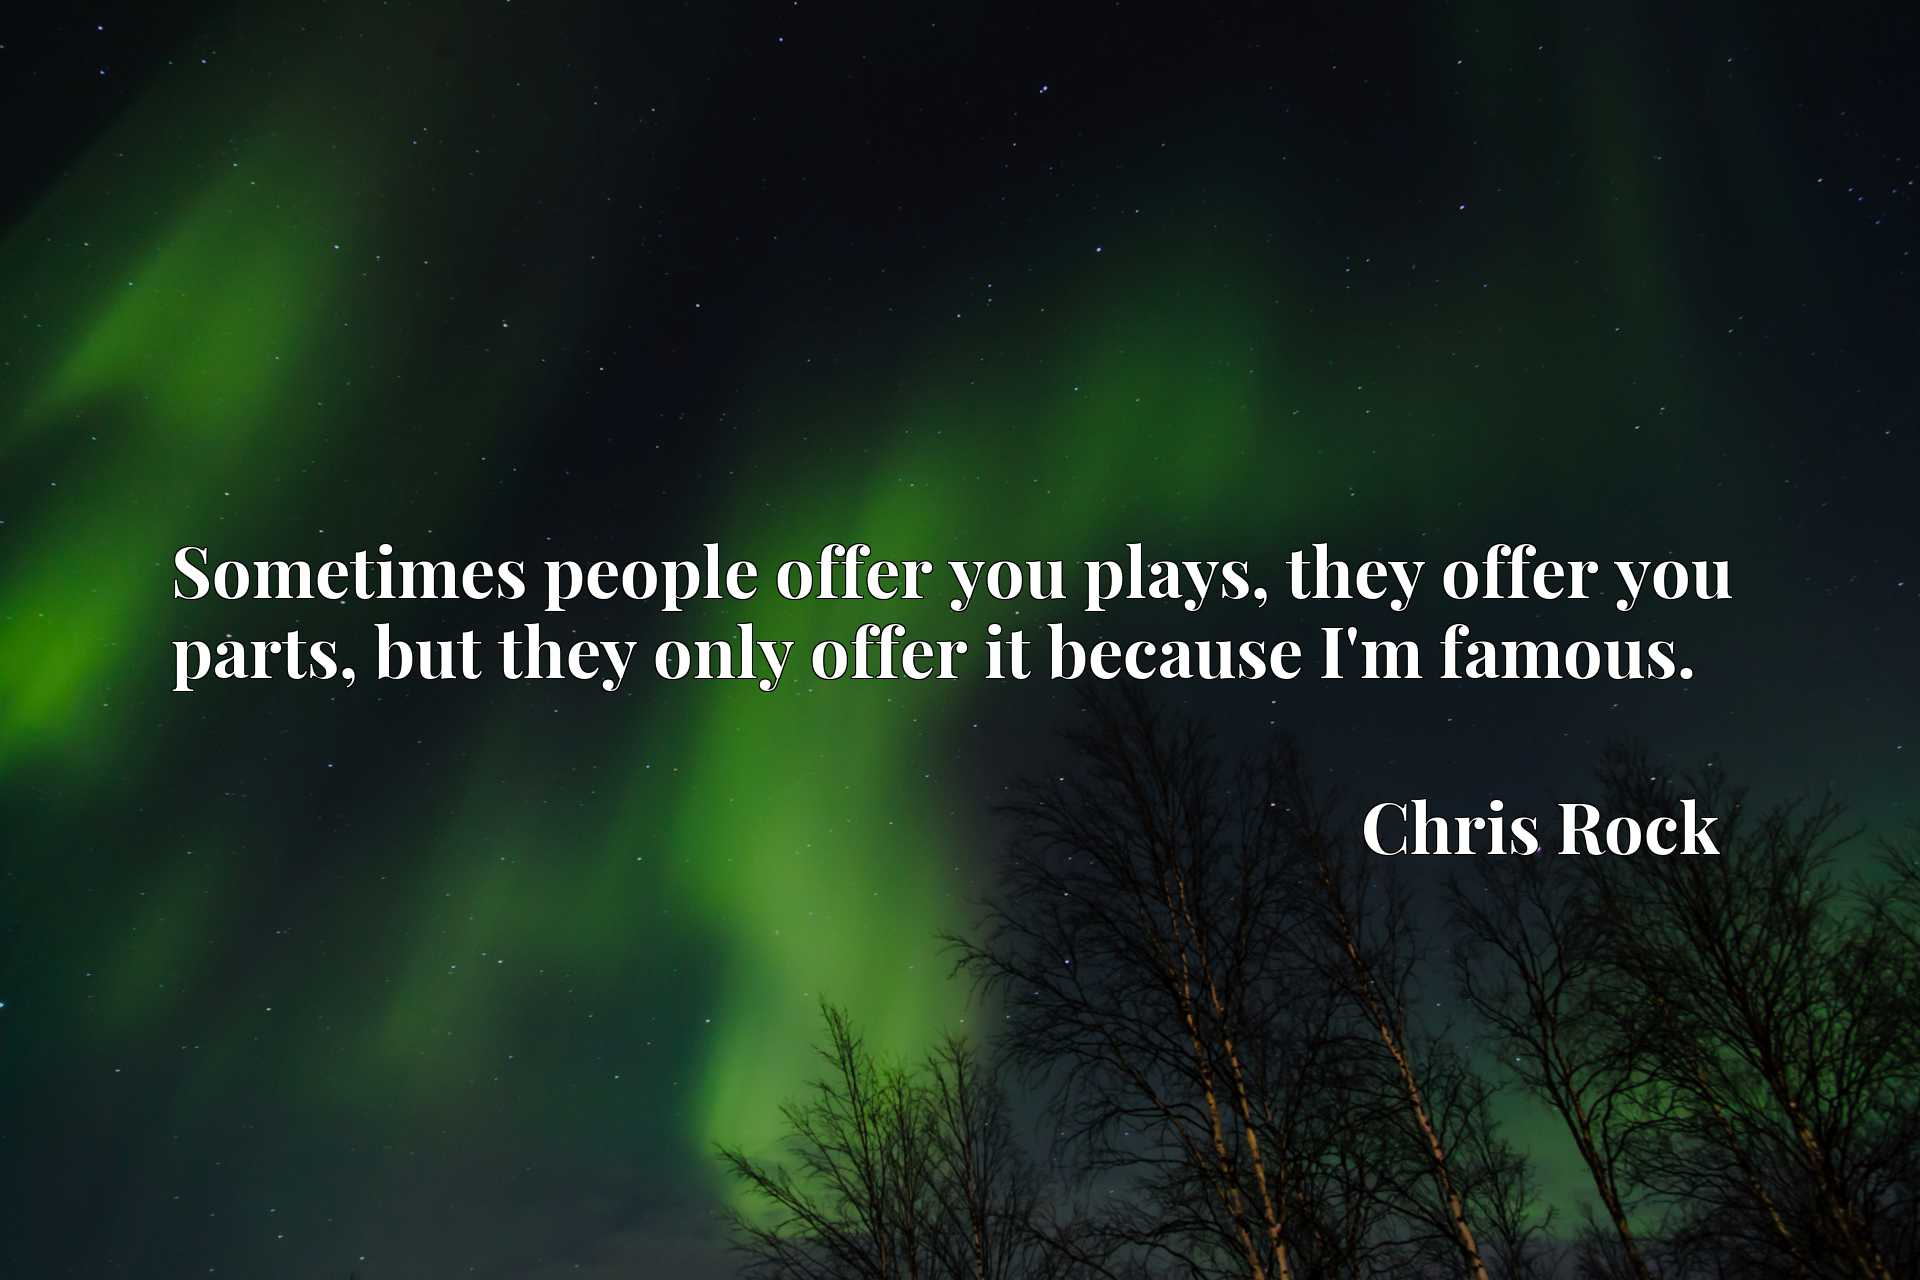 Sometimes people offer you plays, they offer you parts, but they only offer it because I'm famous.